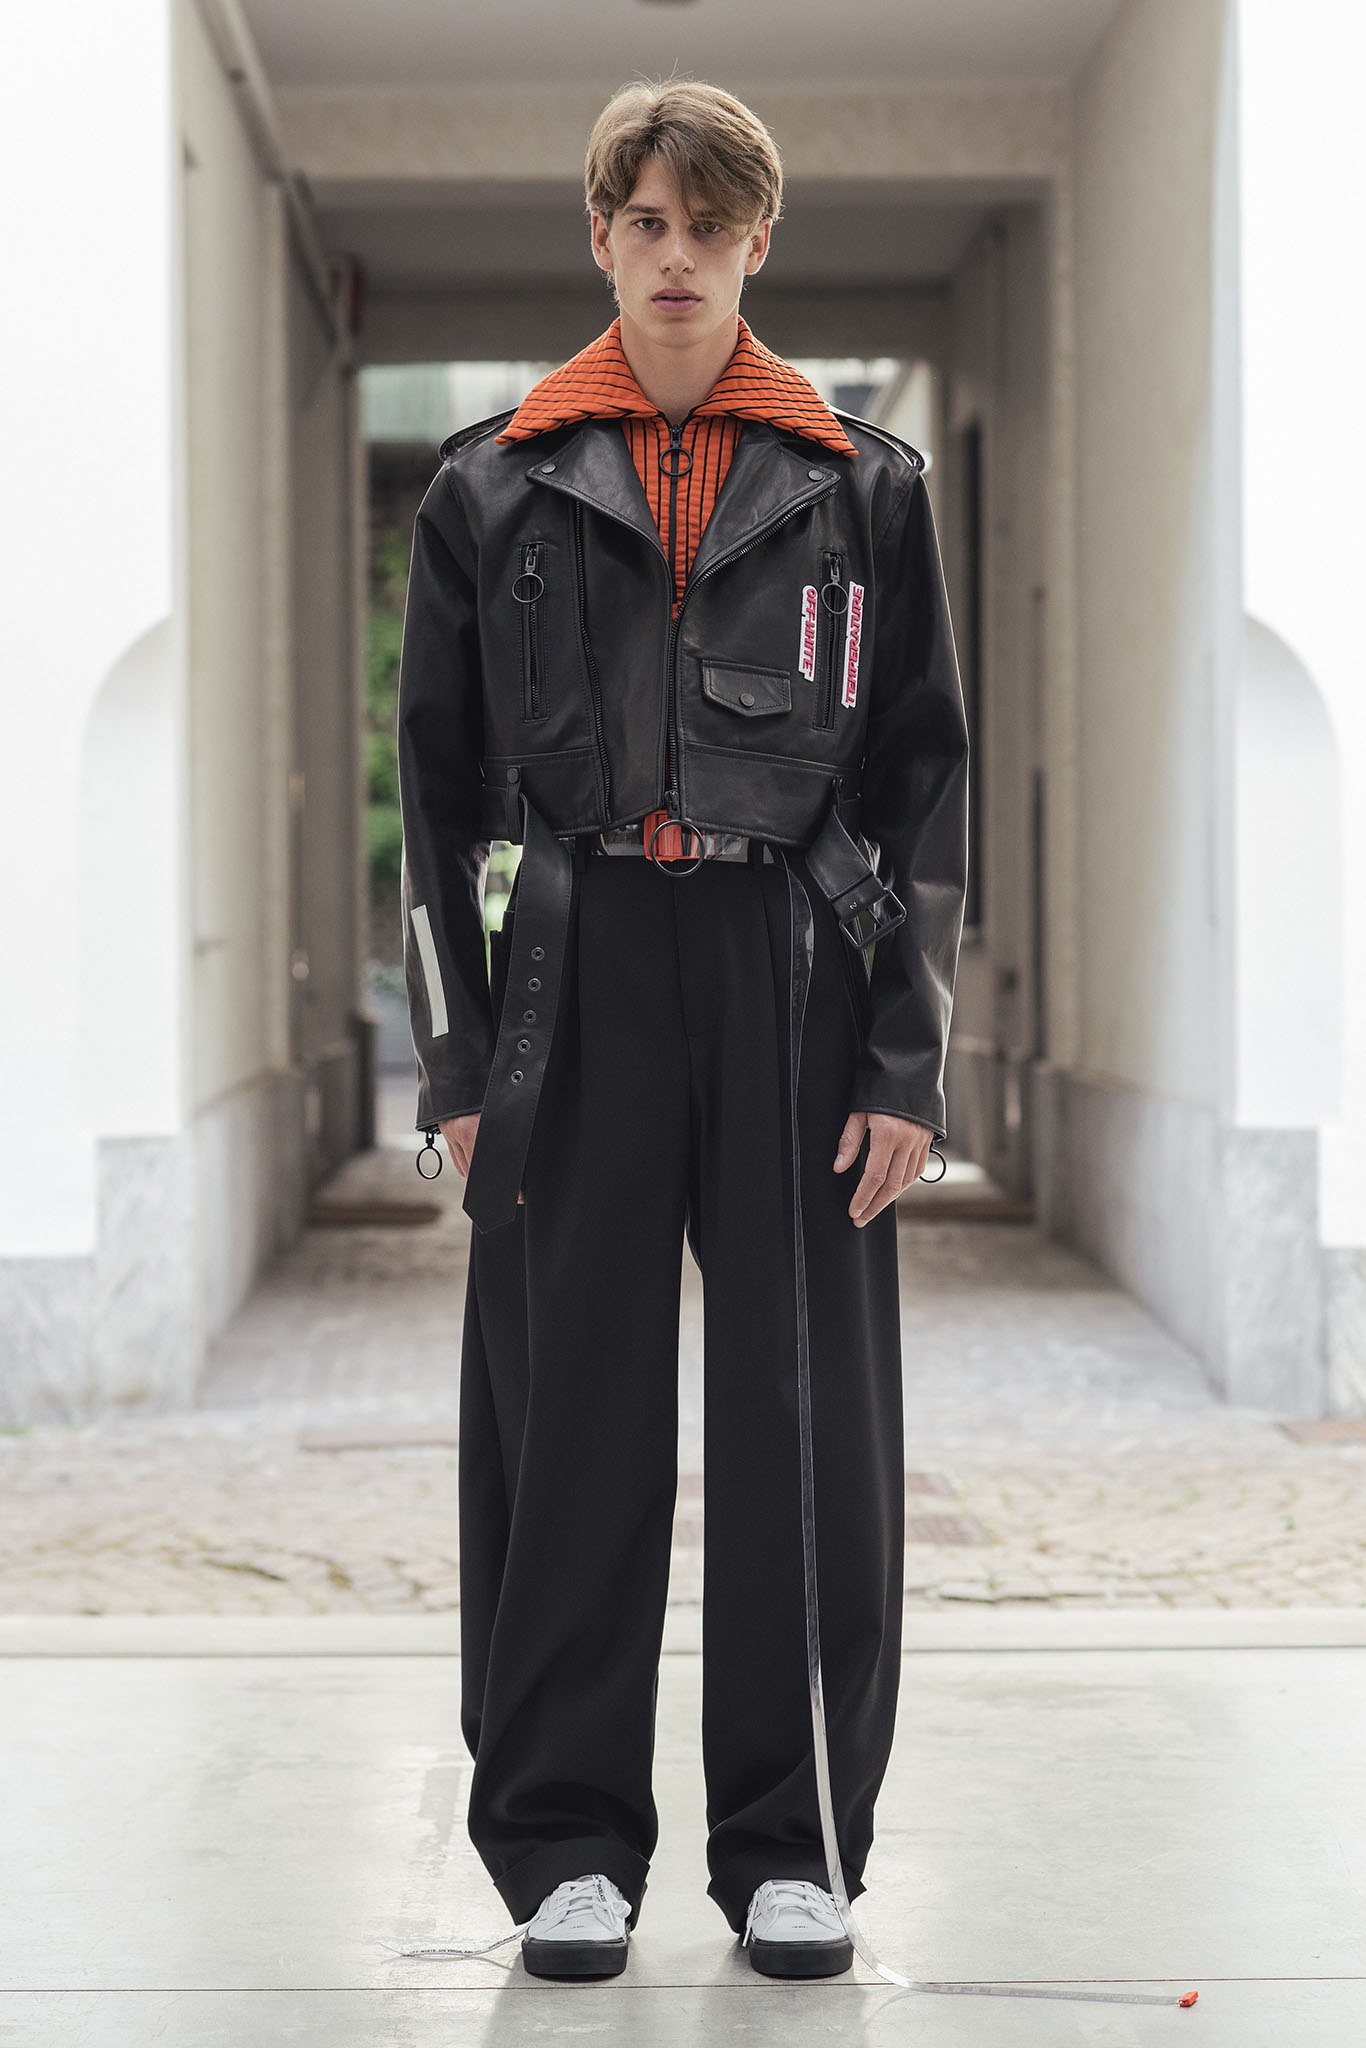 A look from Off-White.